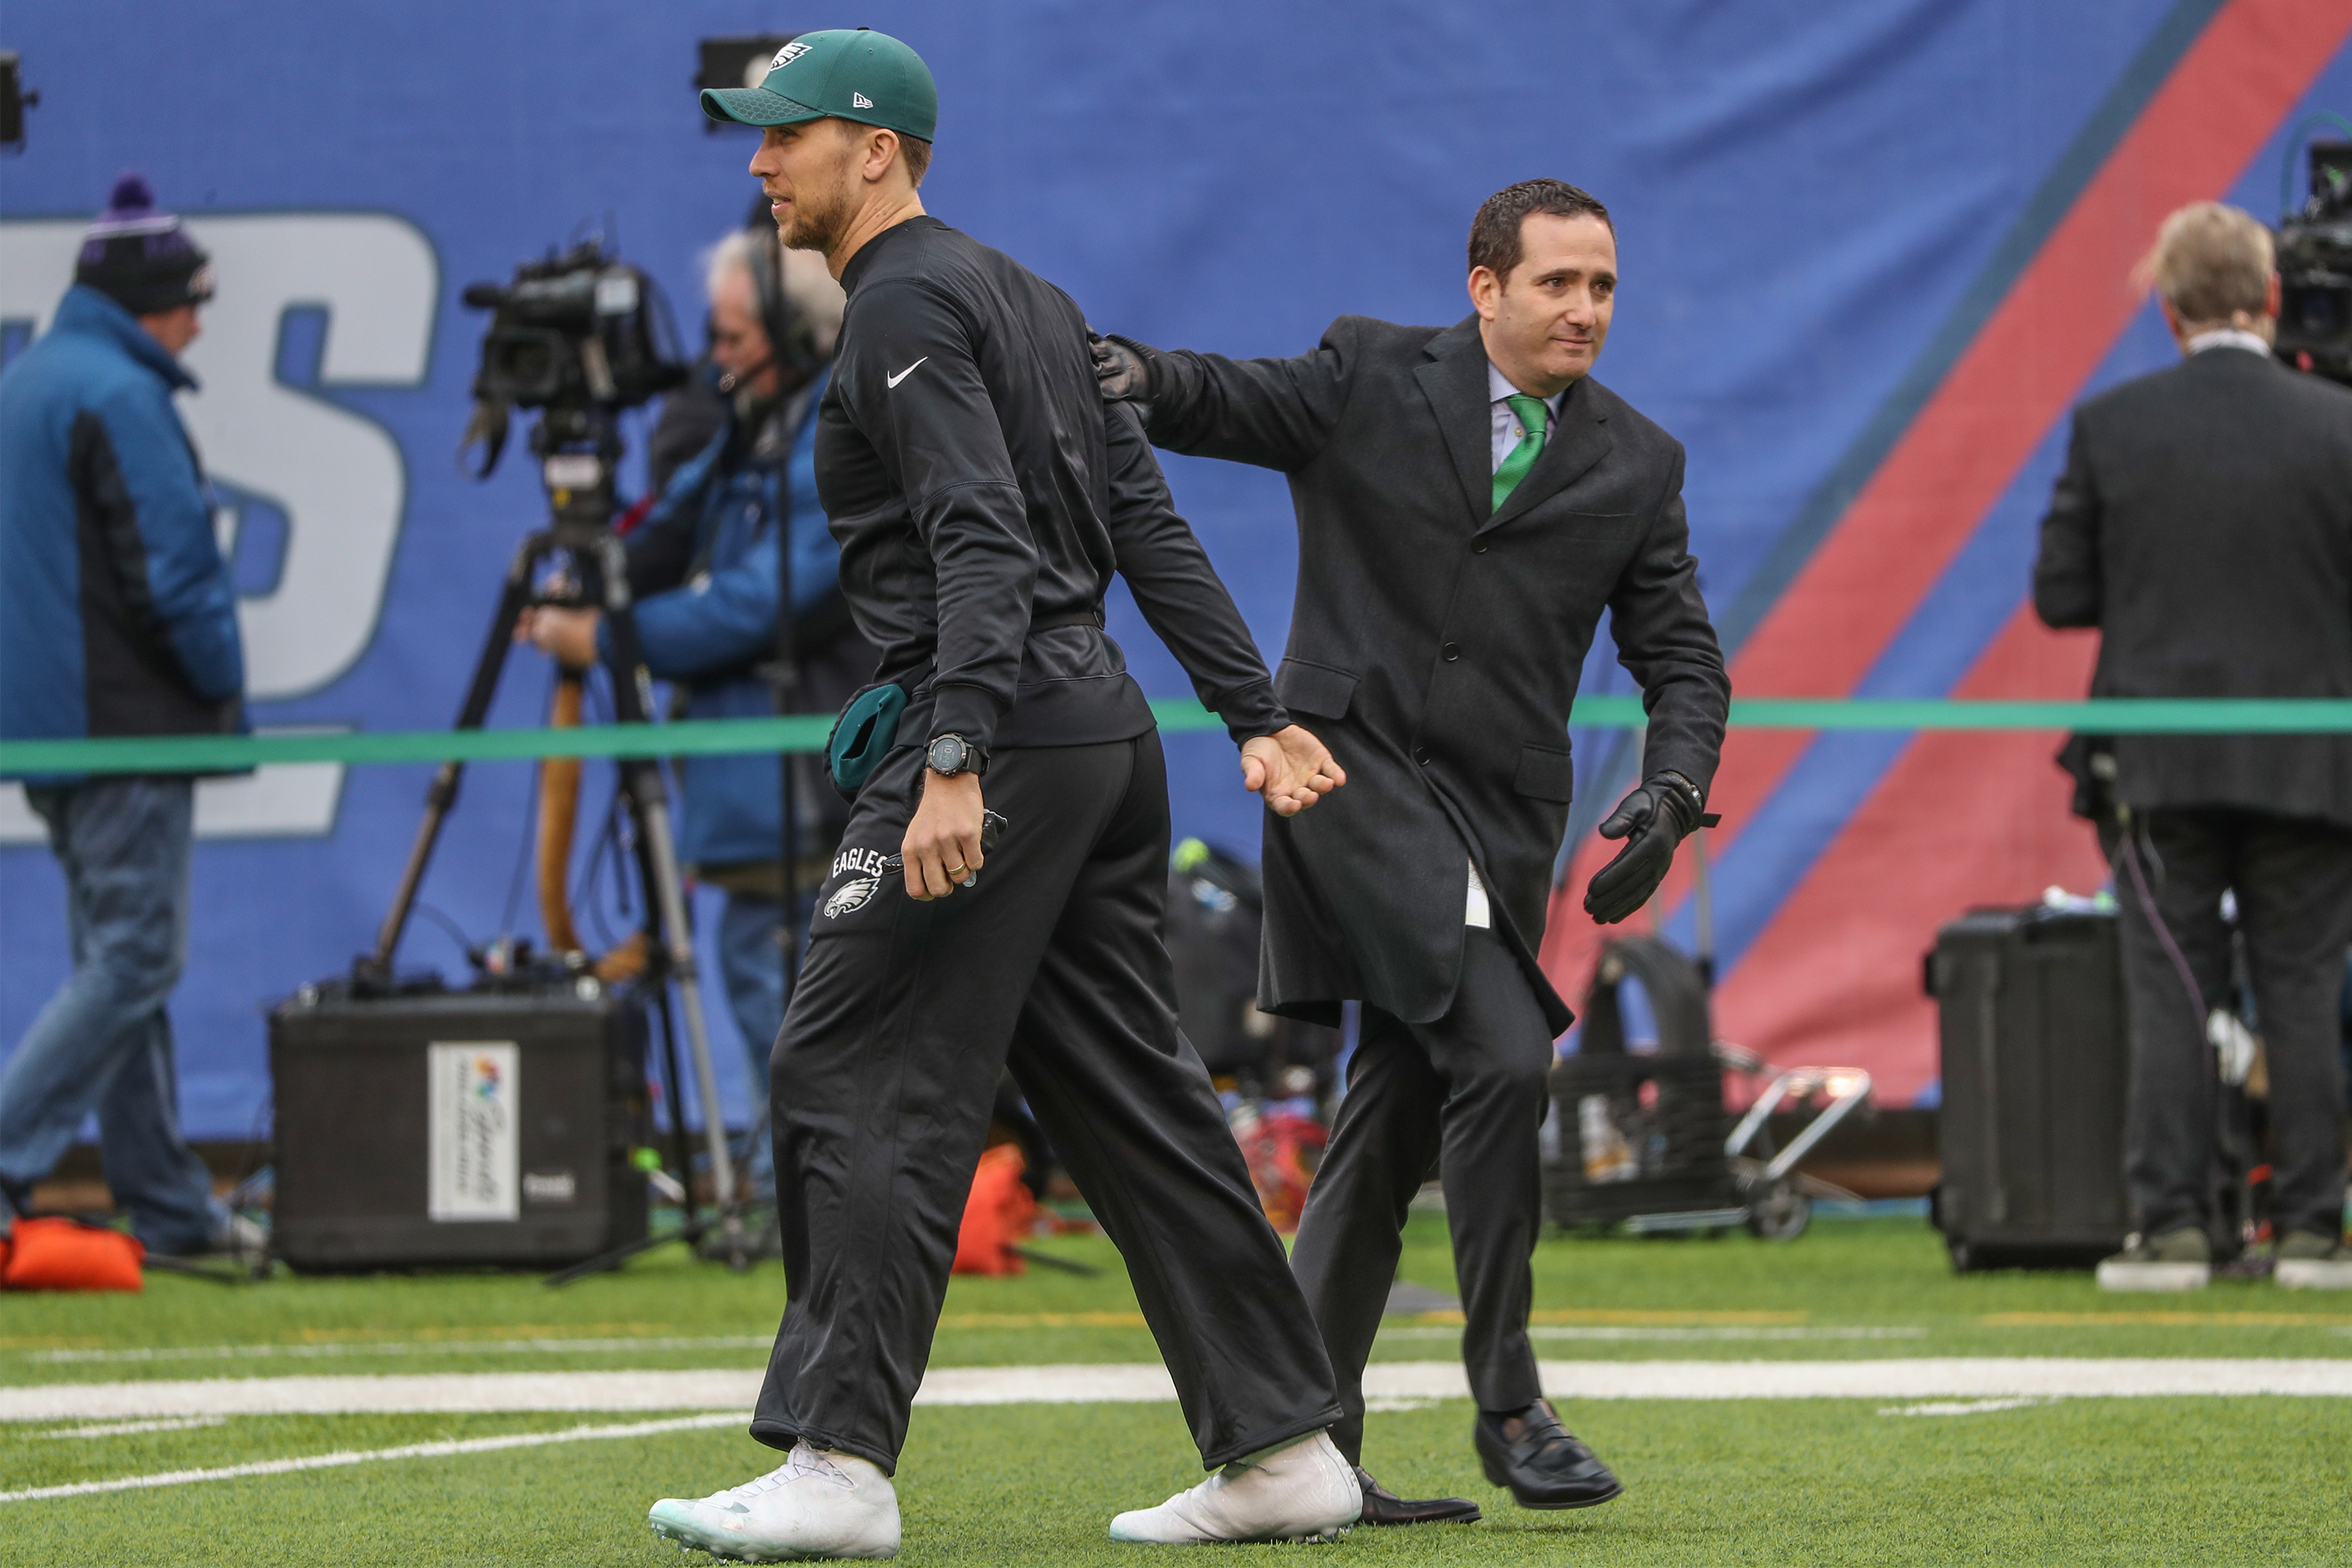 Howie Roseman and Nick Foles.